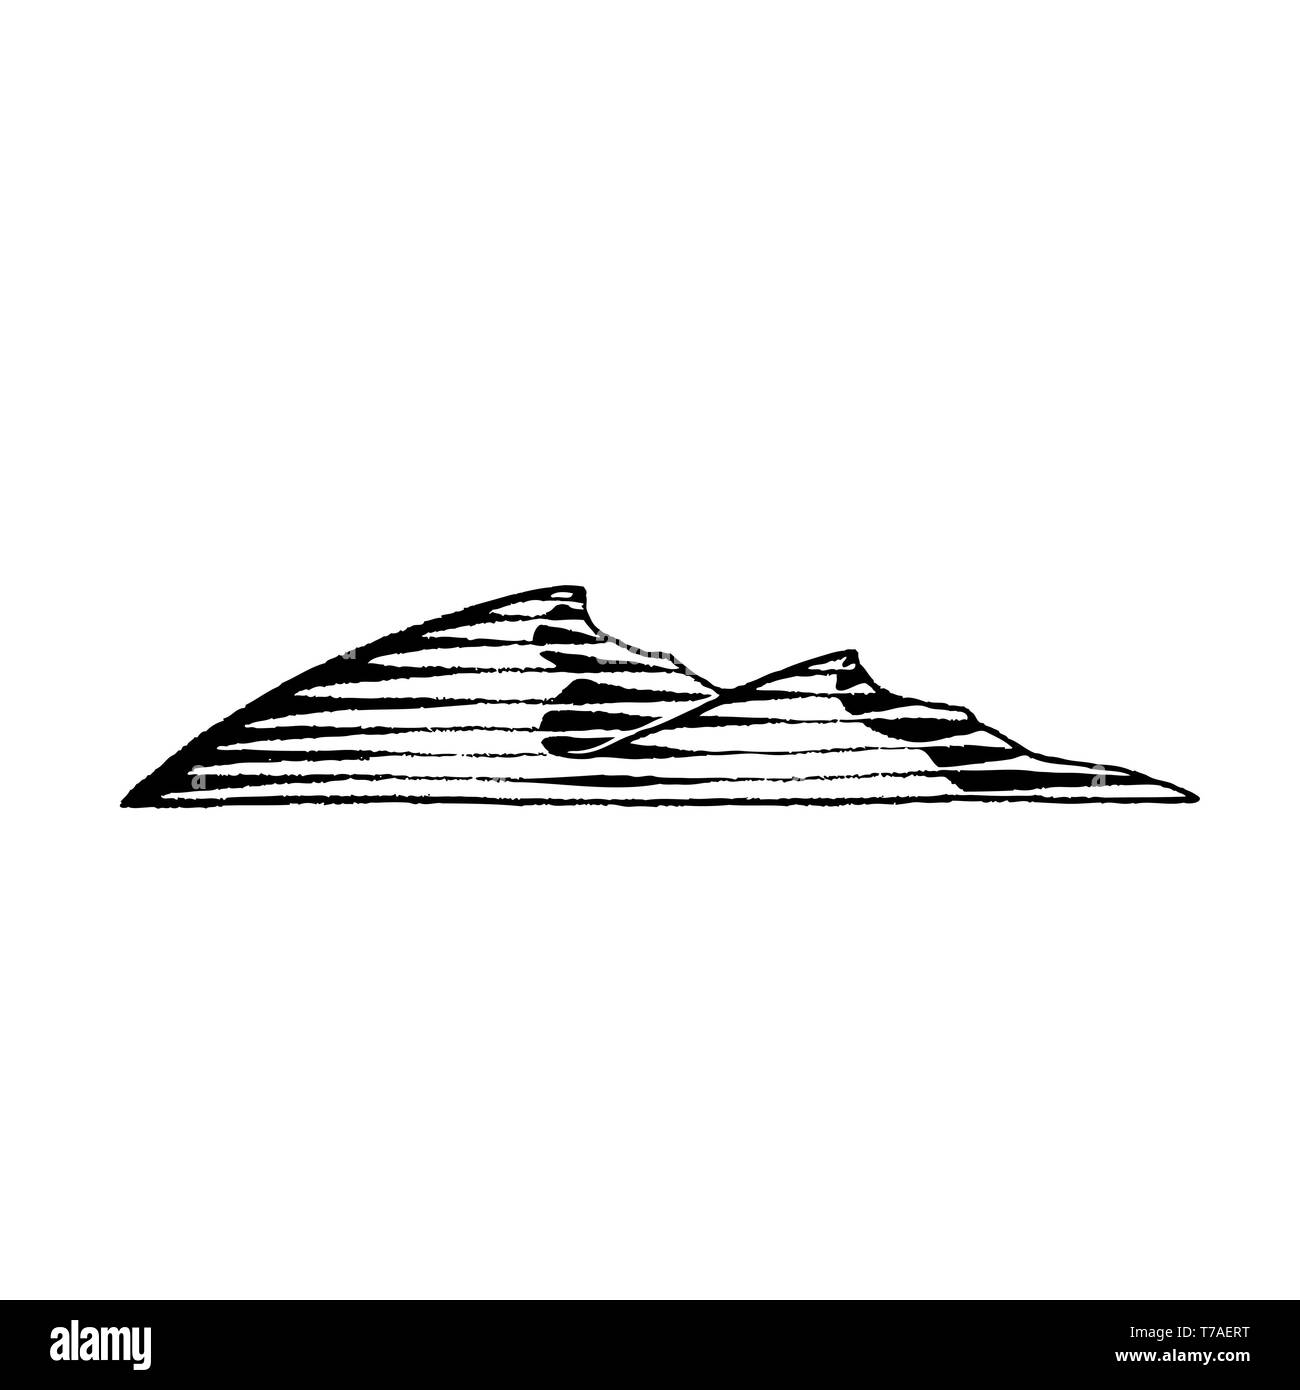 Vector Illustration of a Scratchboard Style Ink Drawing of Sand Dunes - Stock Image